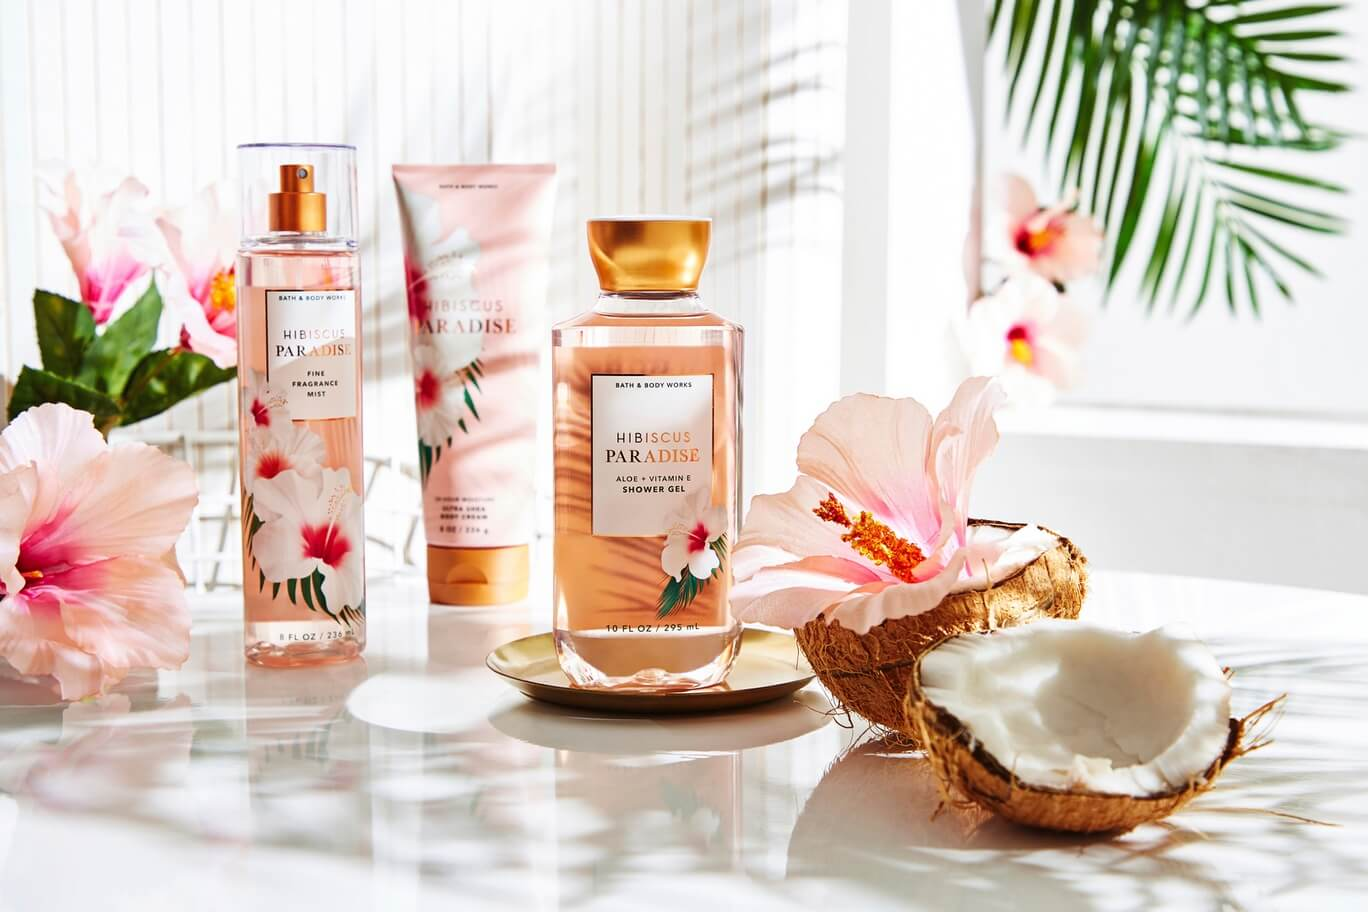 Hibiscus Paradise scented Bath & Body Works products